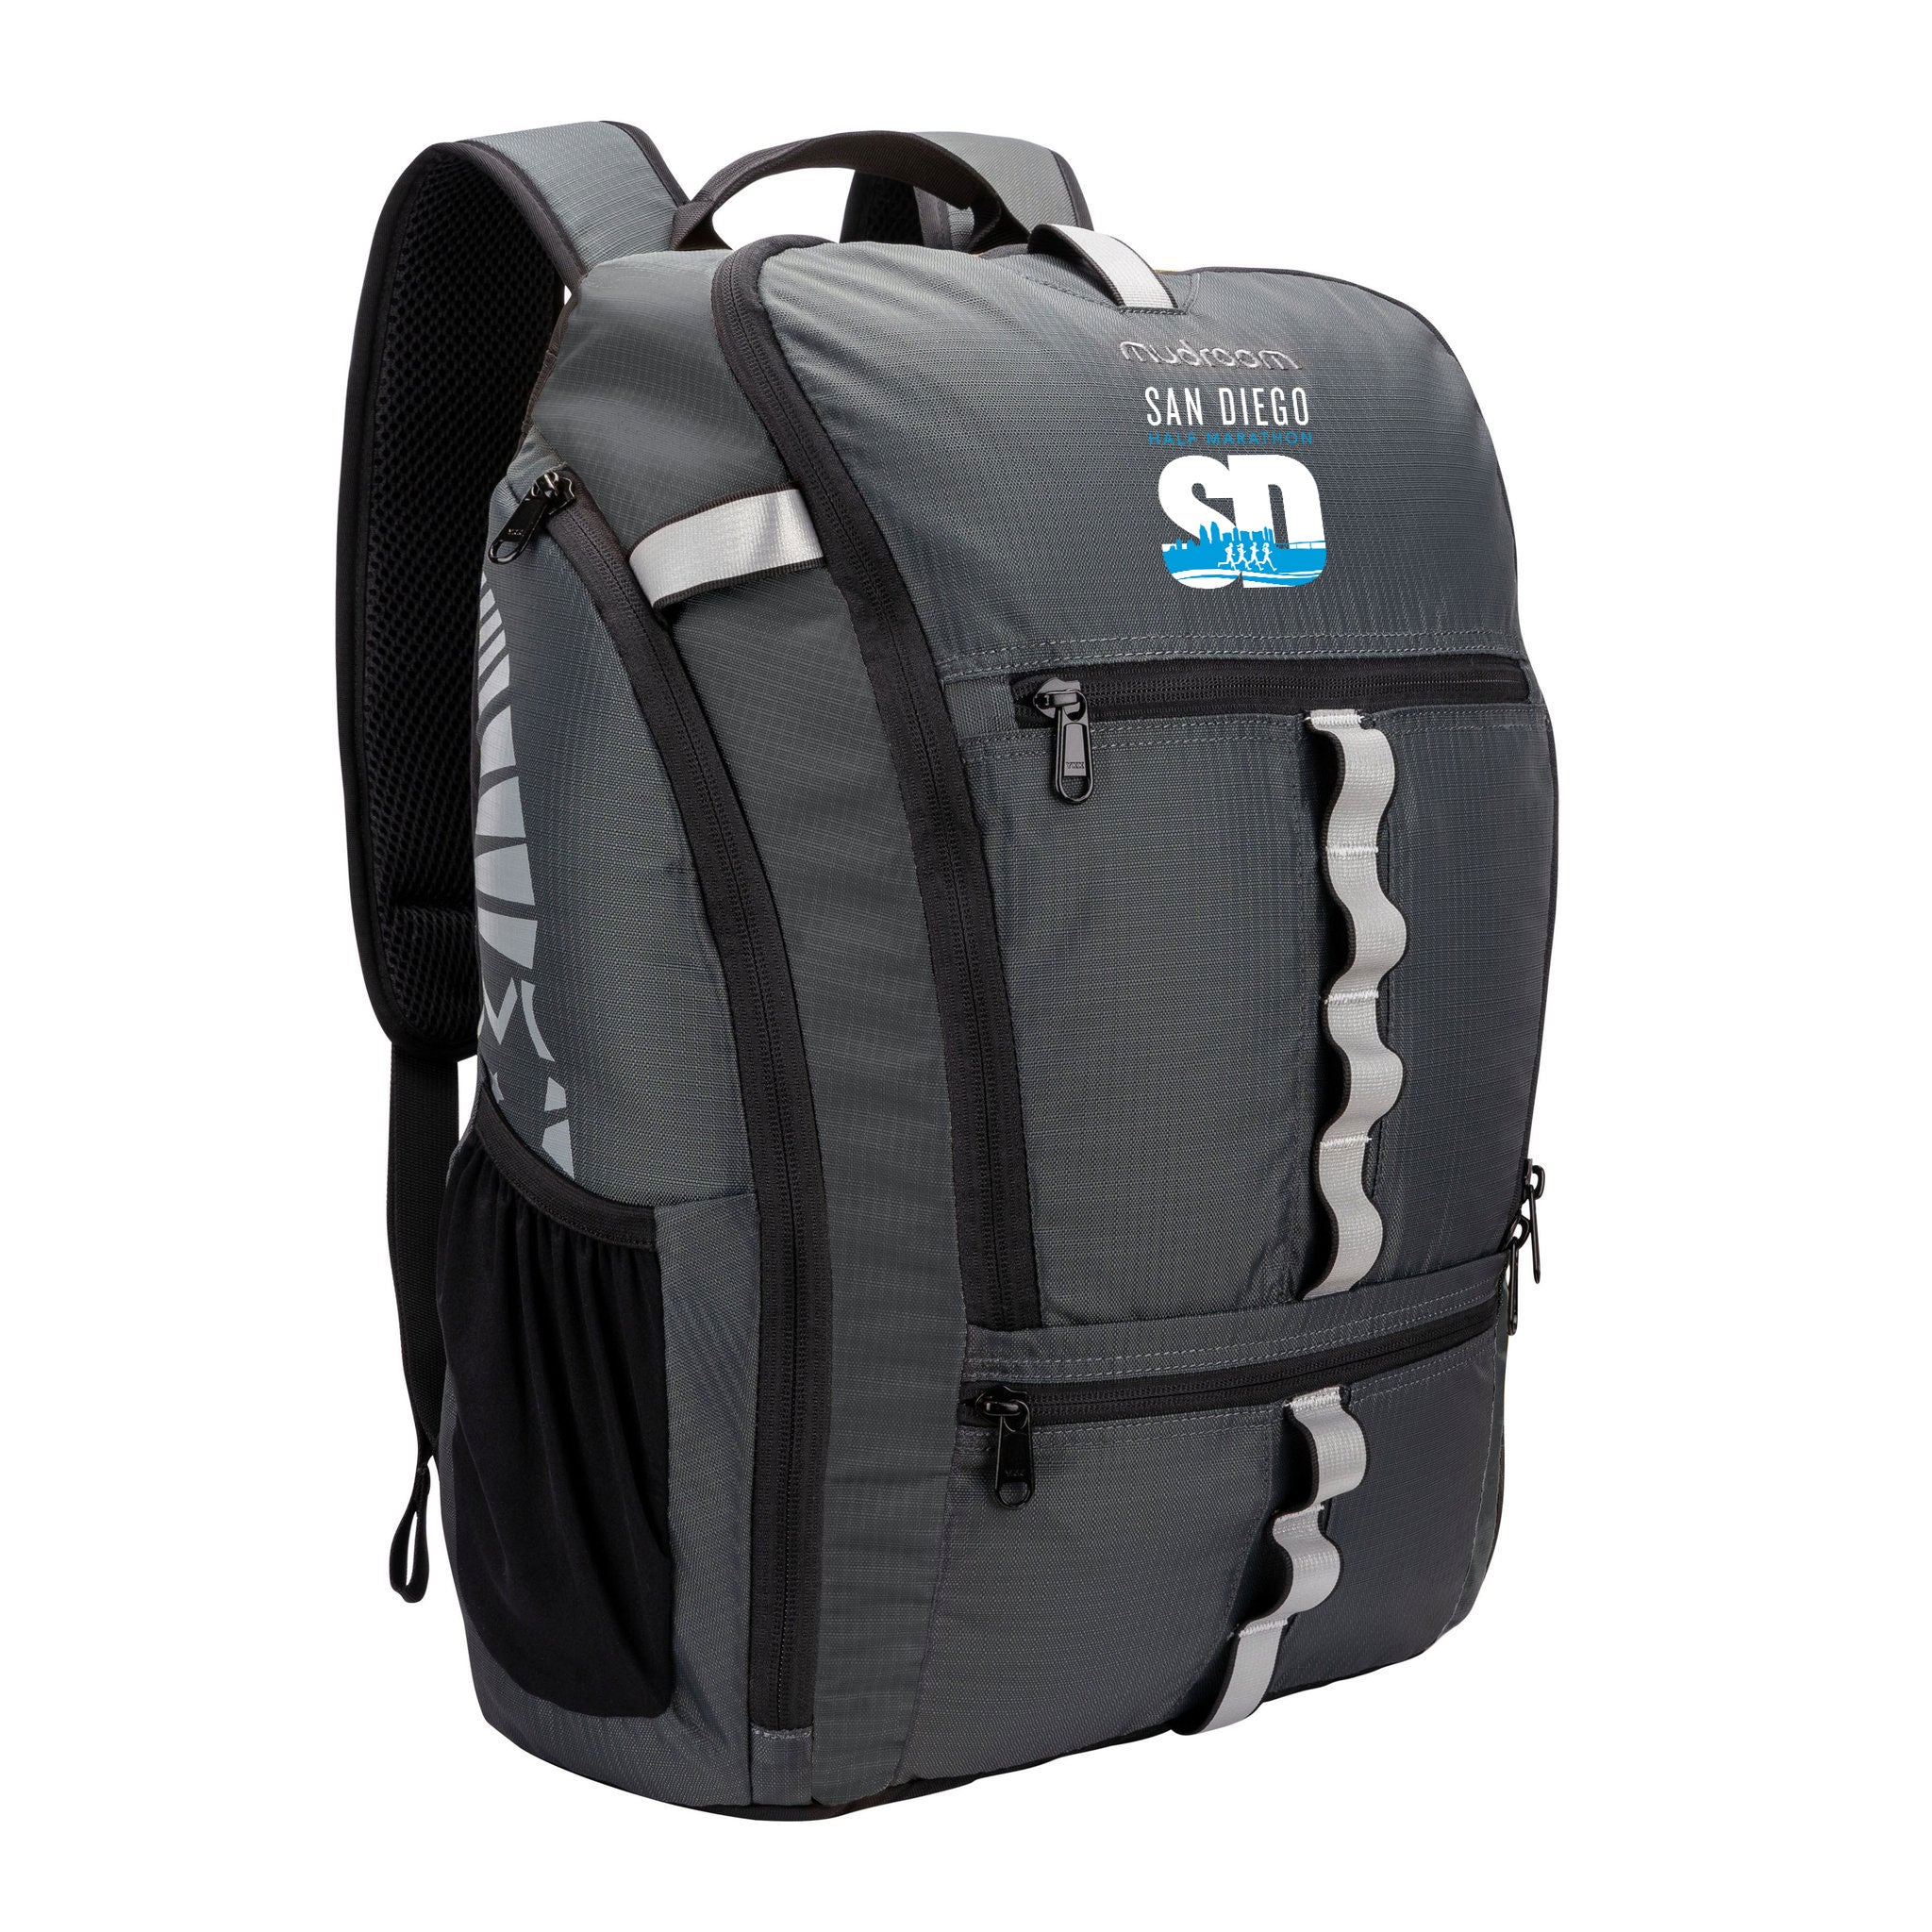 San Diego Half Marathon Mudroom Backpack